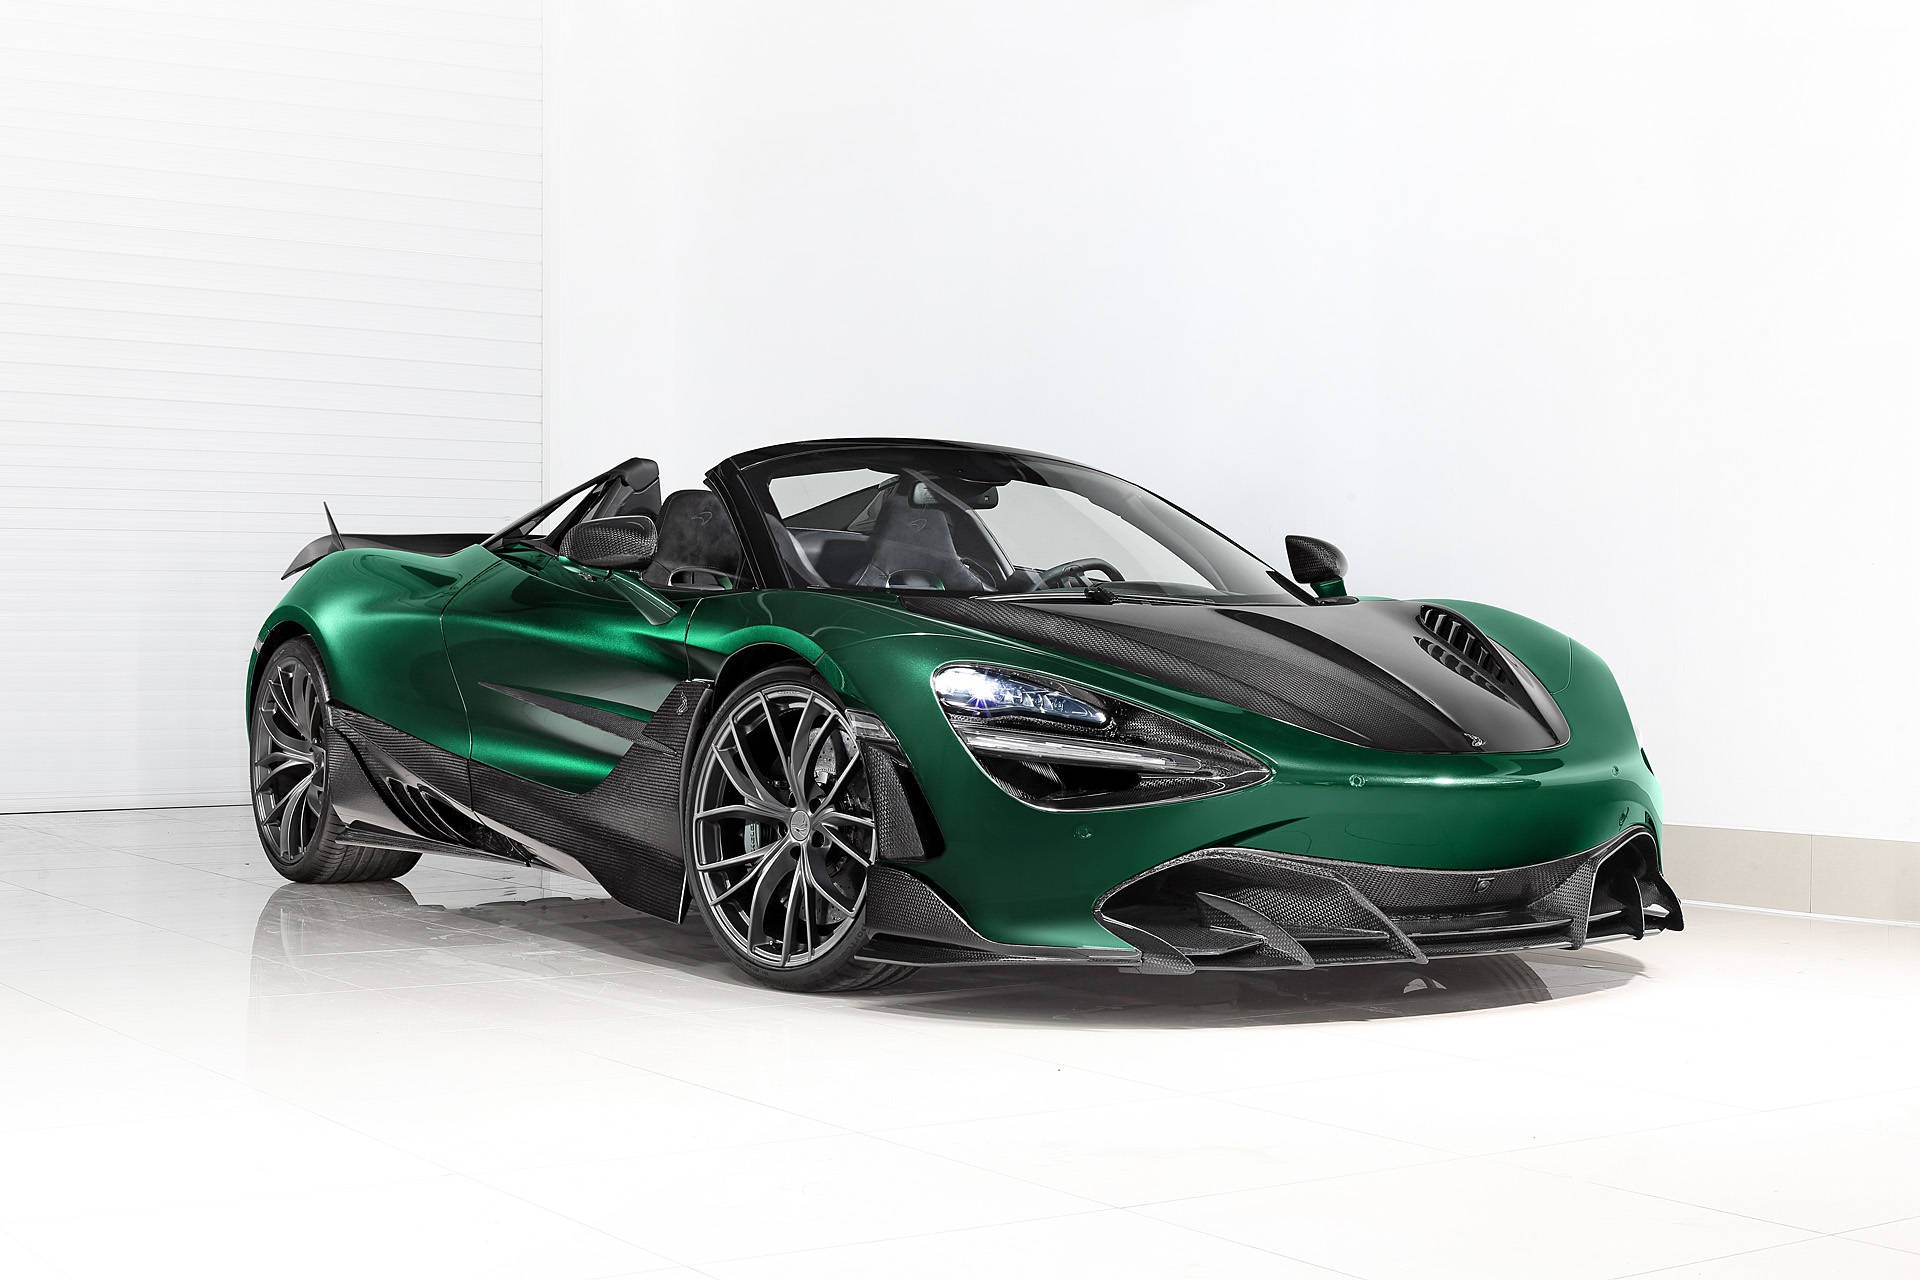 McLaren-720S-Spider-Fury-by-TopCar-for-sale-11